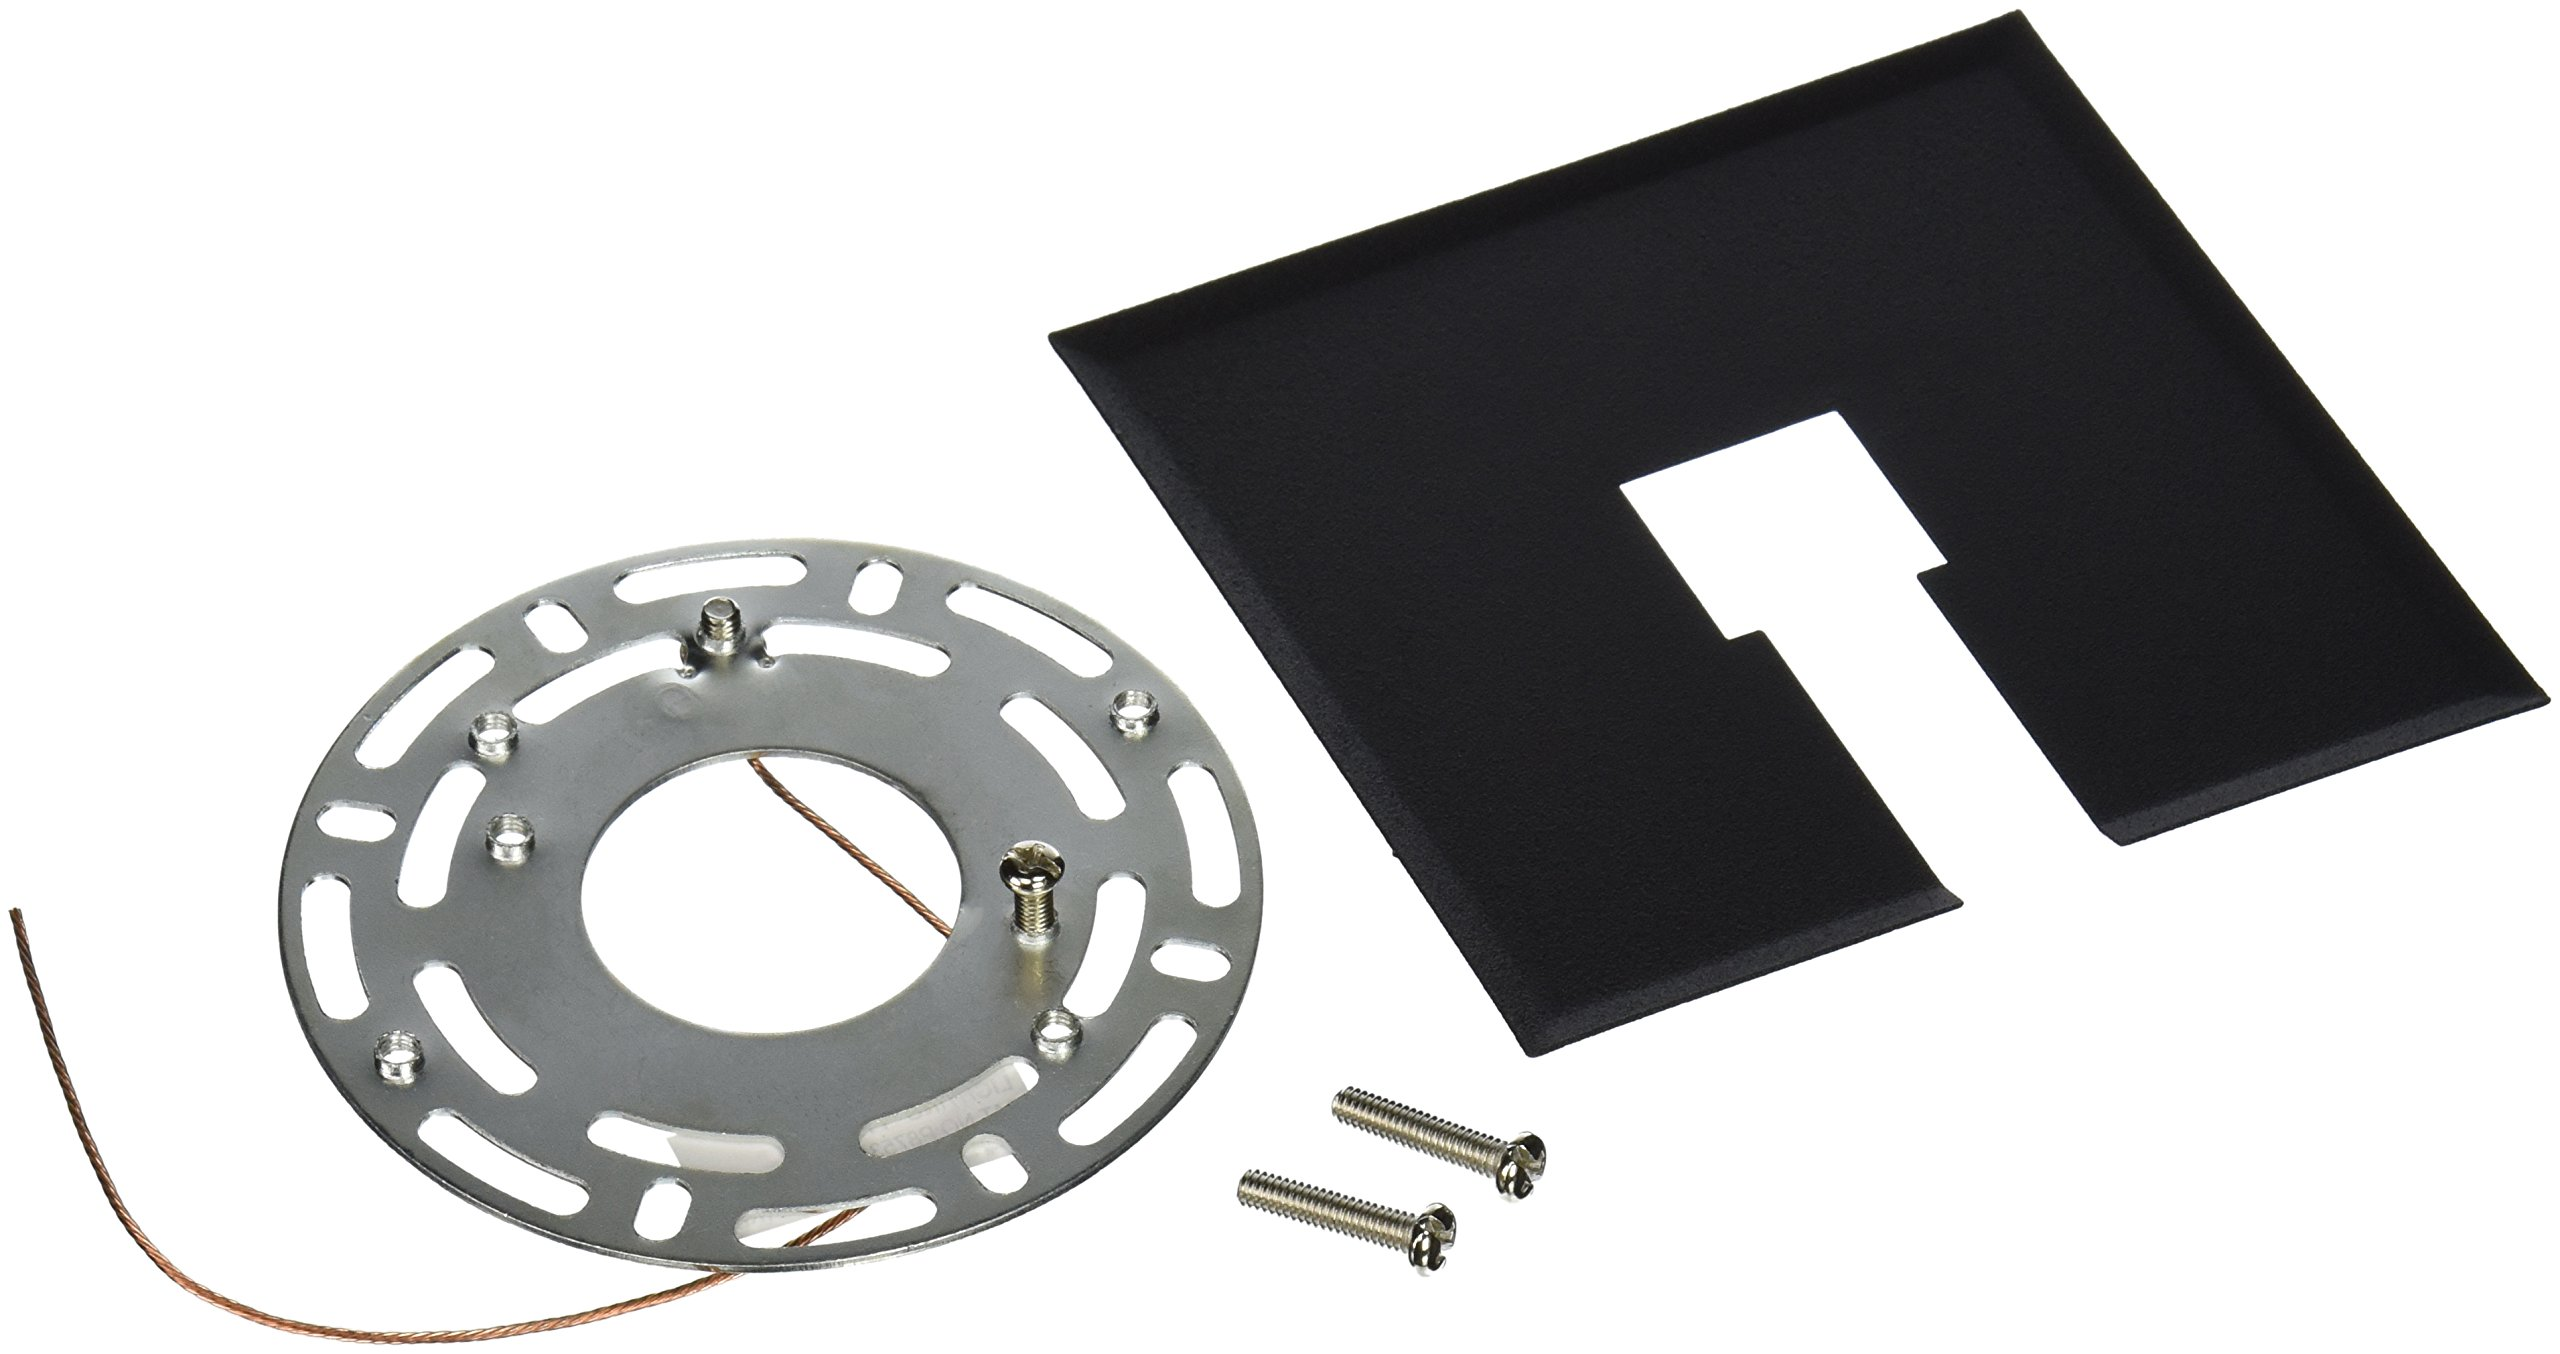 Progress Lighting P8753-31 Canopy Kit Flush Mount Mounting Plate Can Be Used Anywhere Along Track Slips Between Ceiling and Track, Black